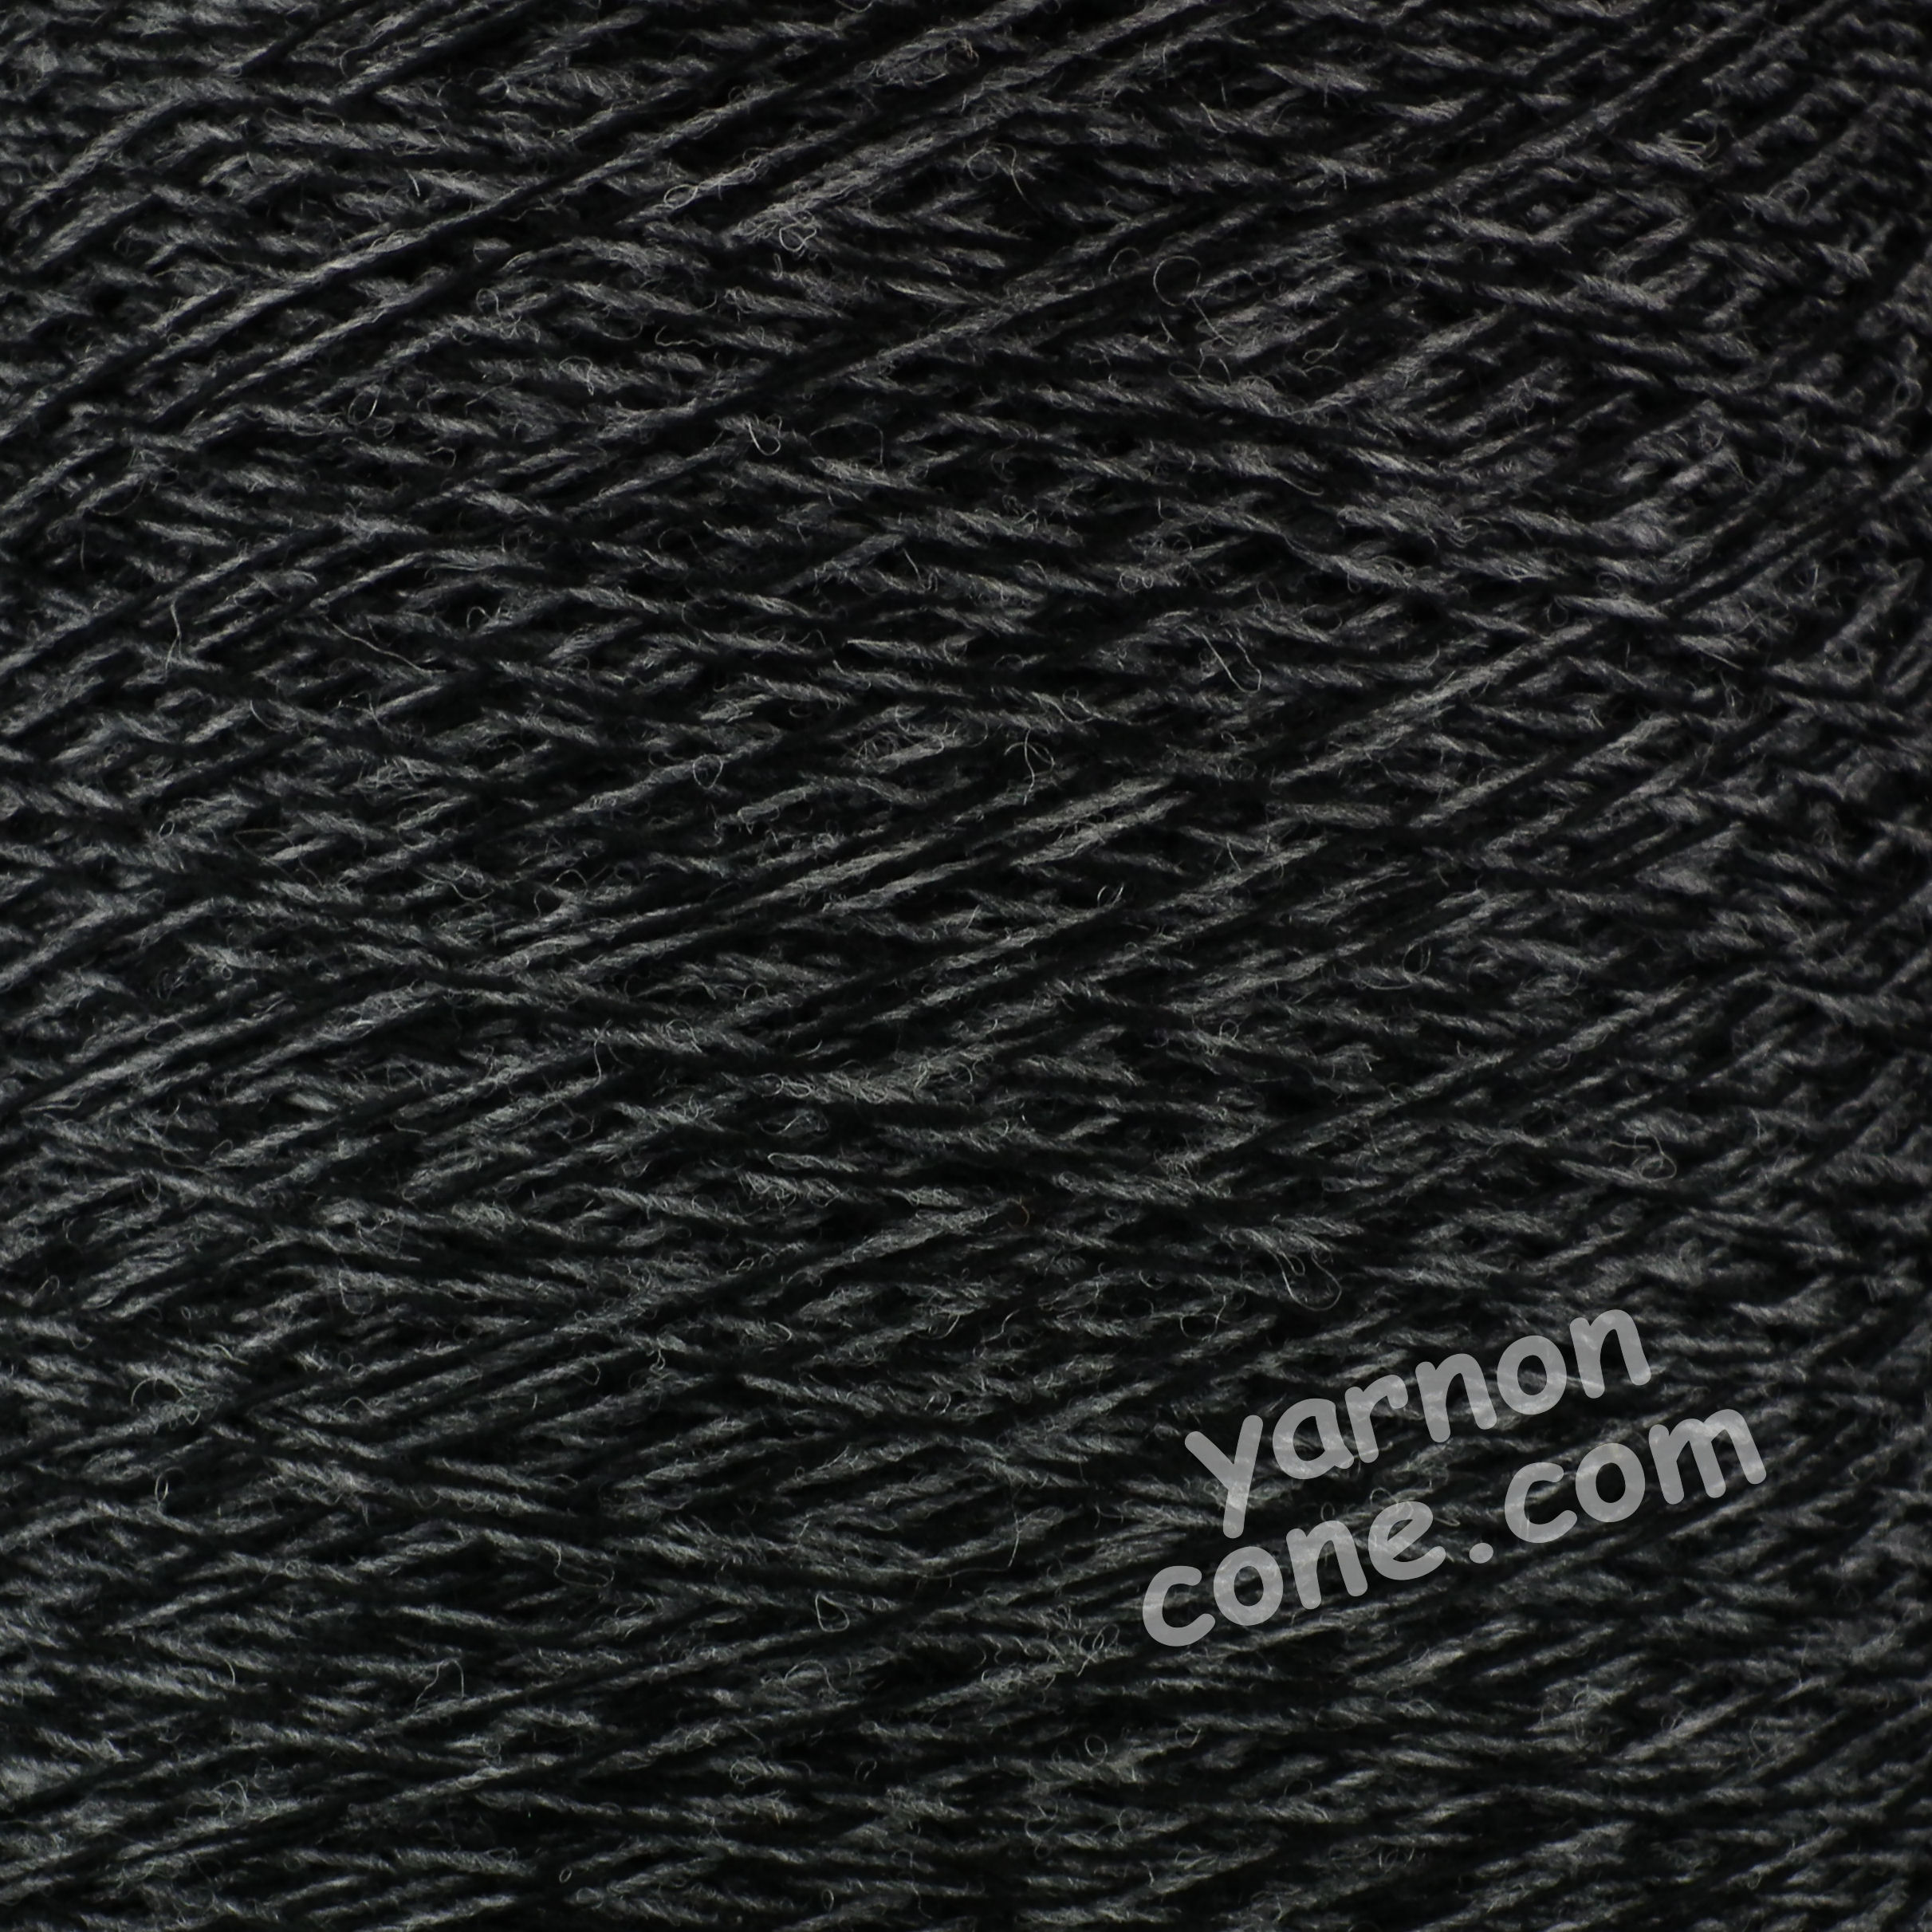 Shetland weaving wool nylon 80 20 2/9 NM black grey tweed marl yarn on cone uk